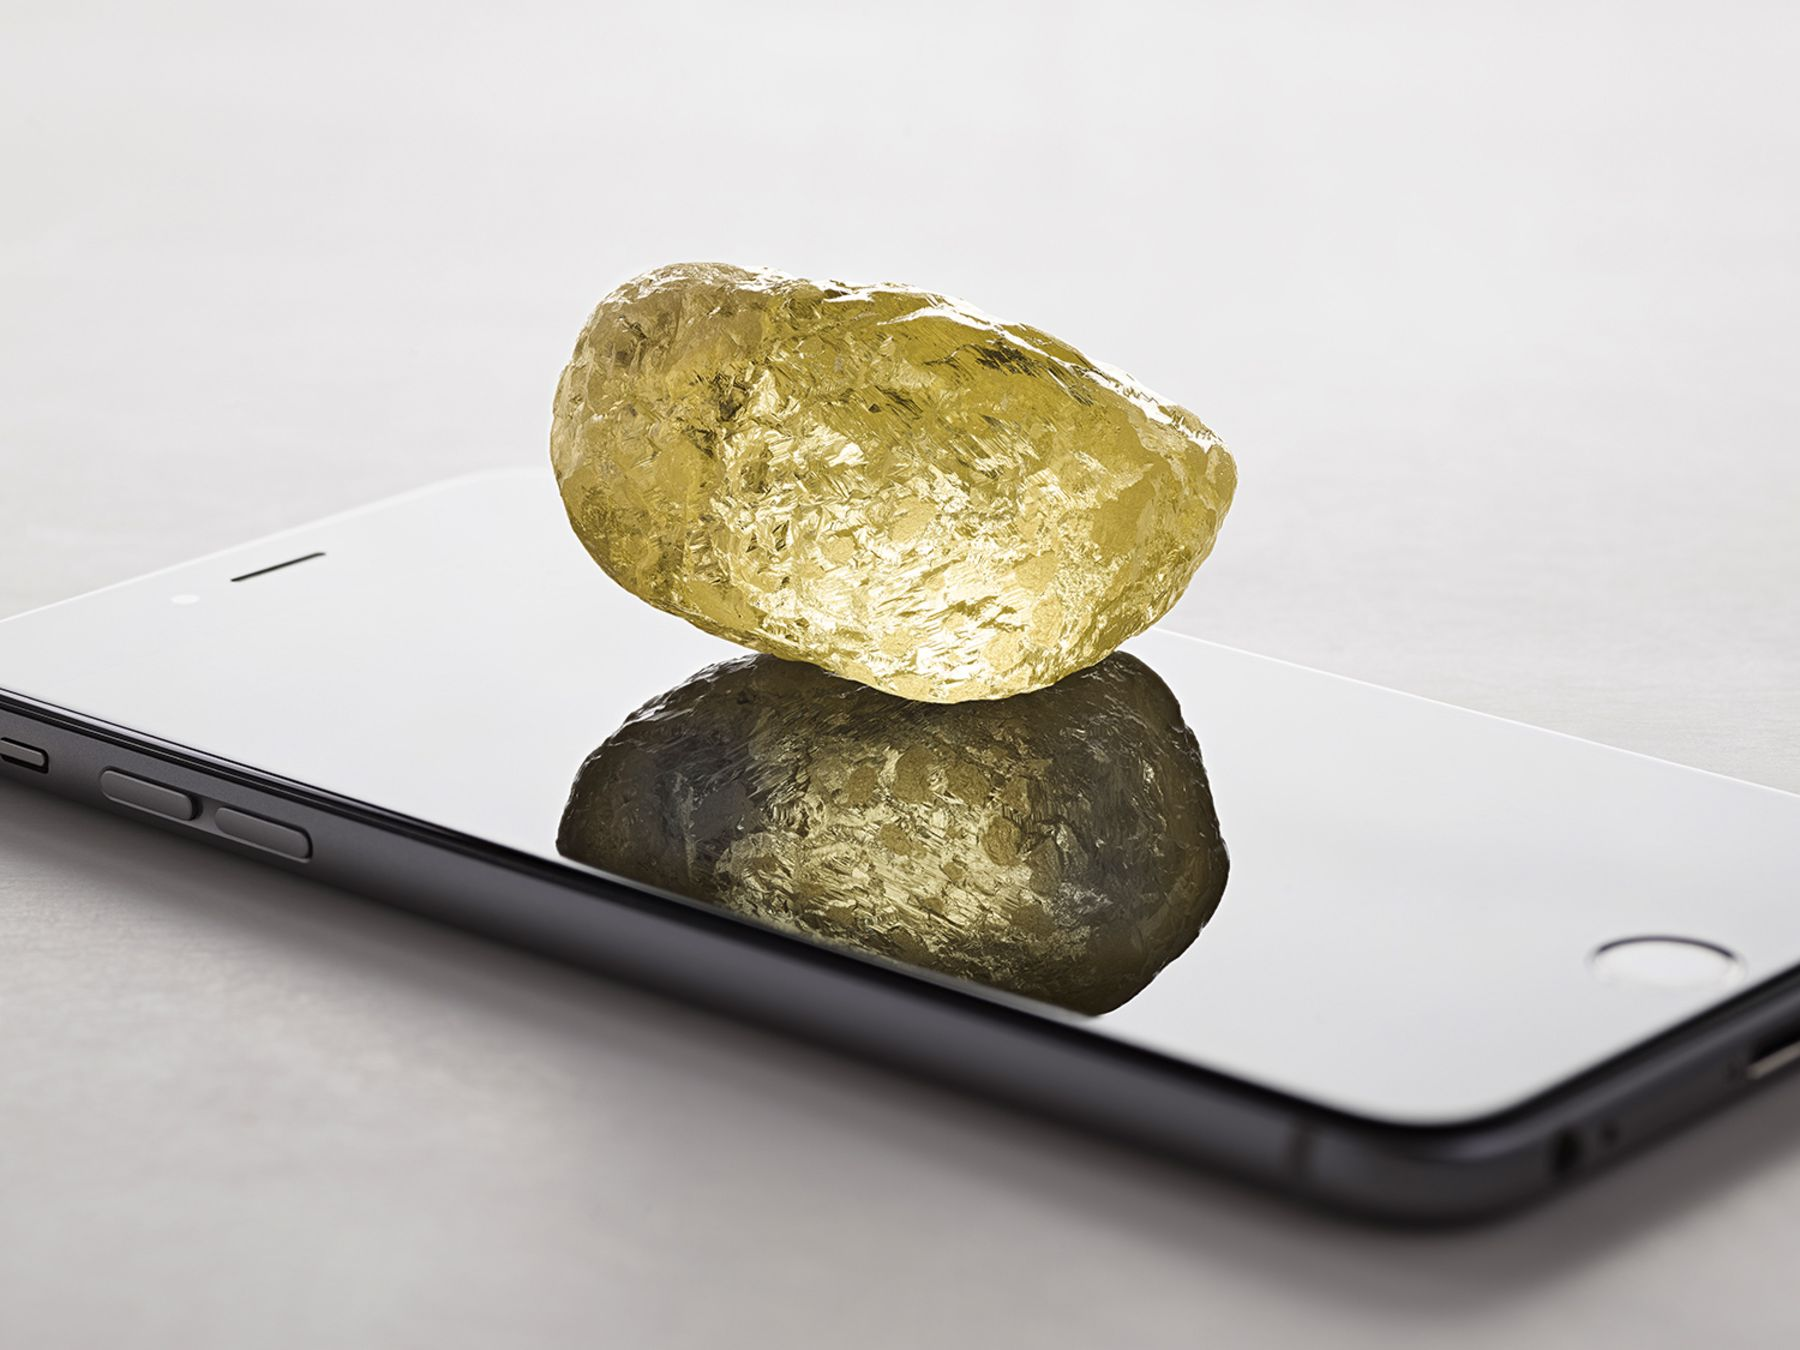 552-carat yellow diamond found in Canada, largest ever in North America